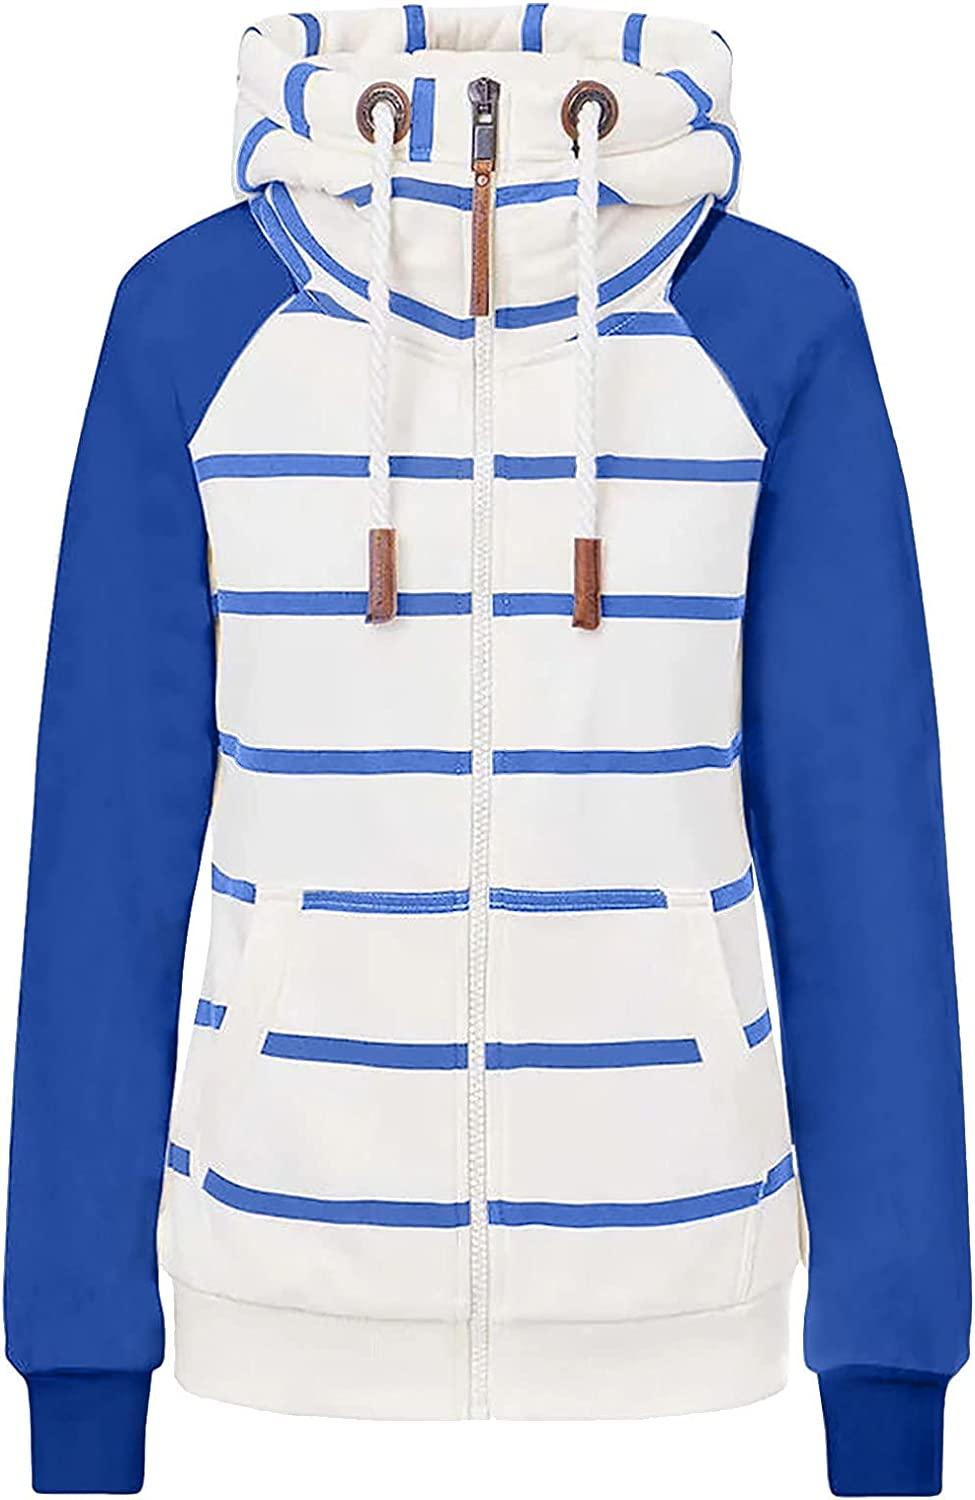 Women Hoodie Jacket Fashion Stripe Sweater Coat Long Sleeve Zip Up Oversized Drawstring Casual Outerwear with Pocket